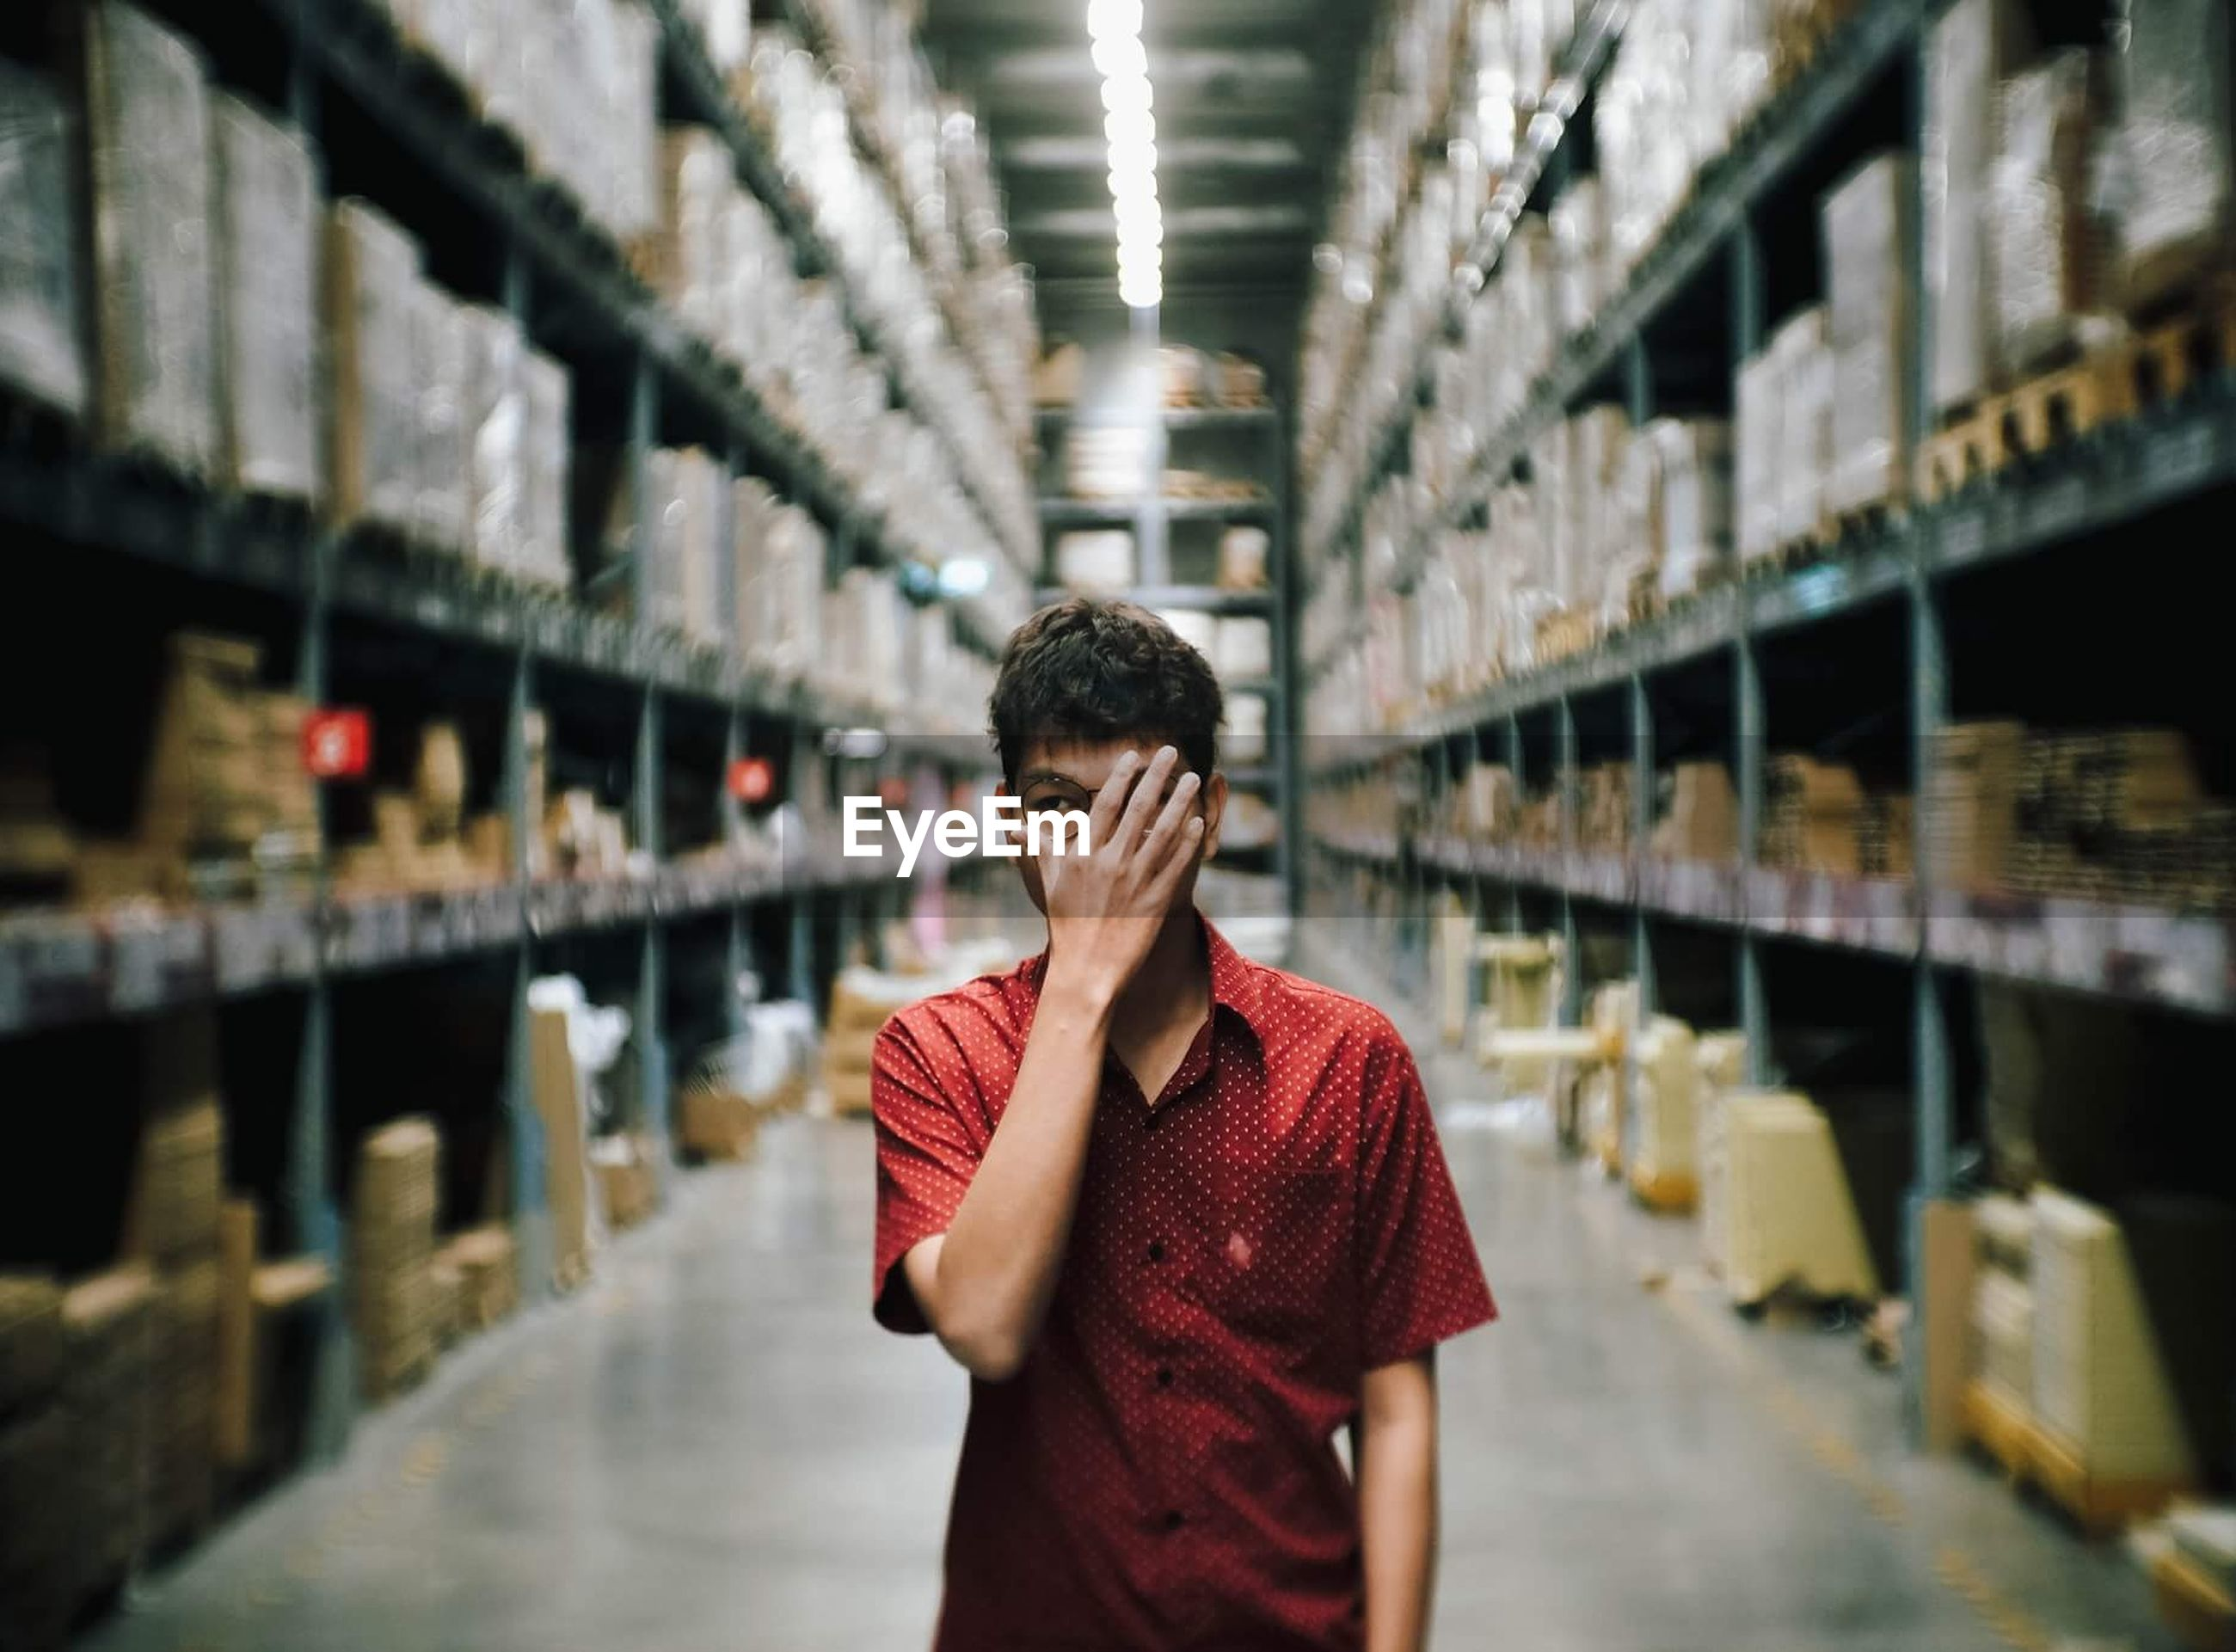 Man covering face with hand while standing amidst shelves at factory